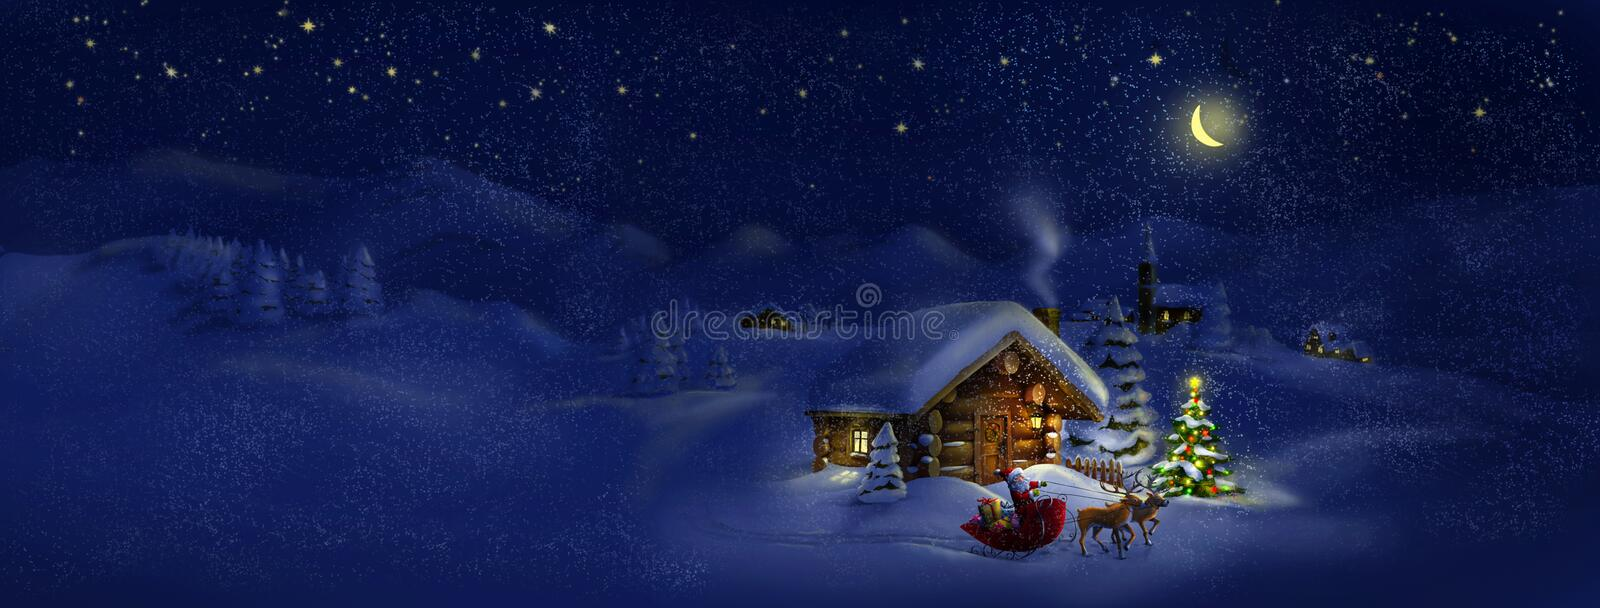 Santa with presents, deers, Christmas tree, hut. Panorama landscape royalty free illustration